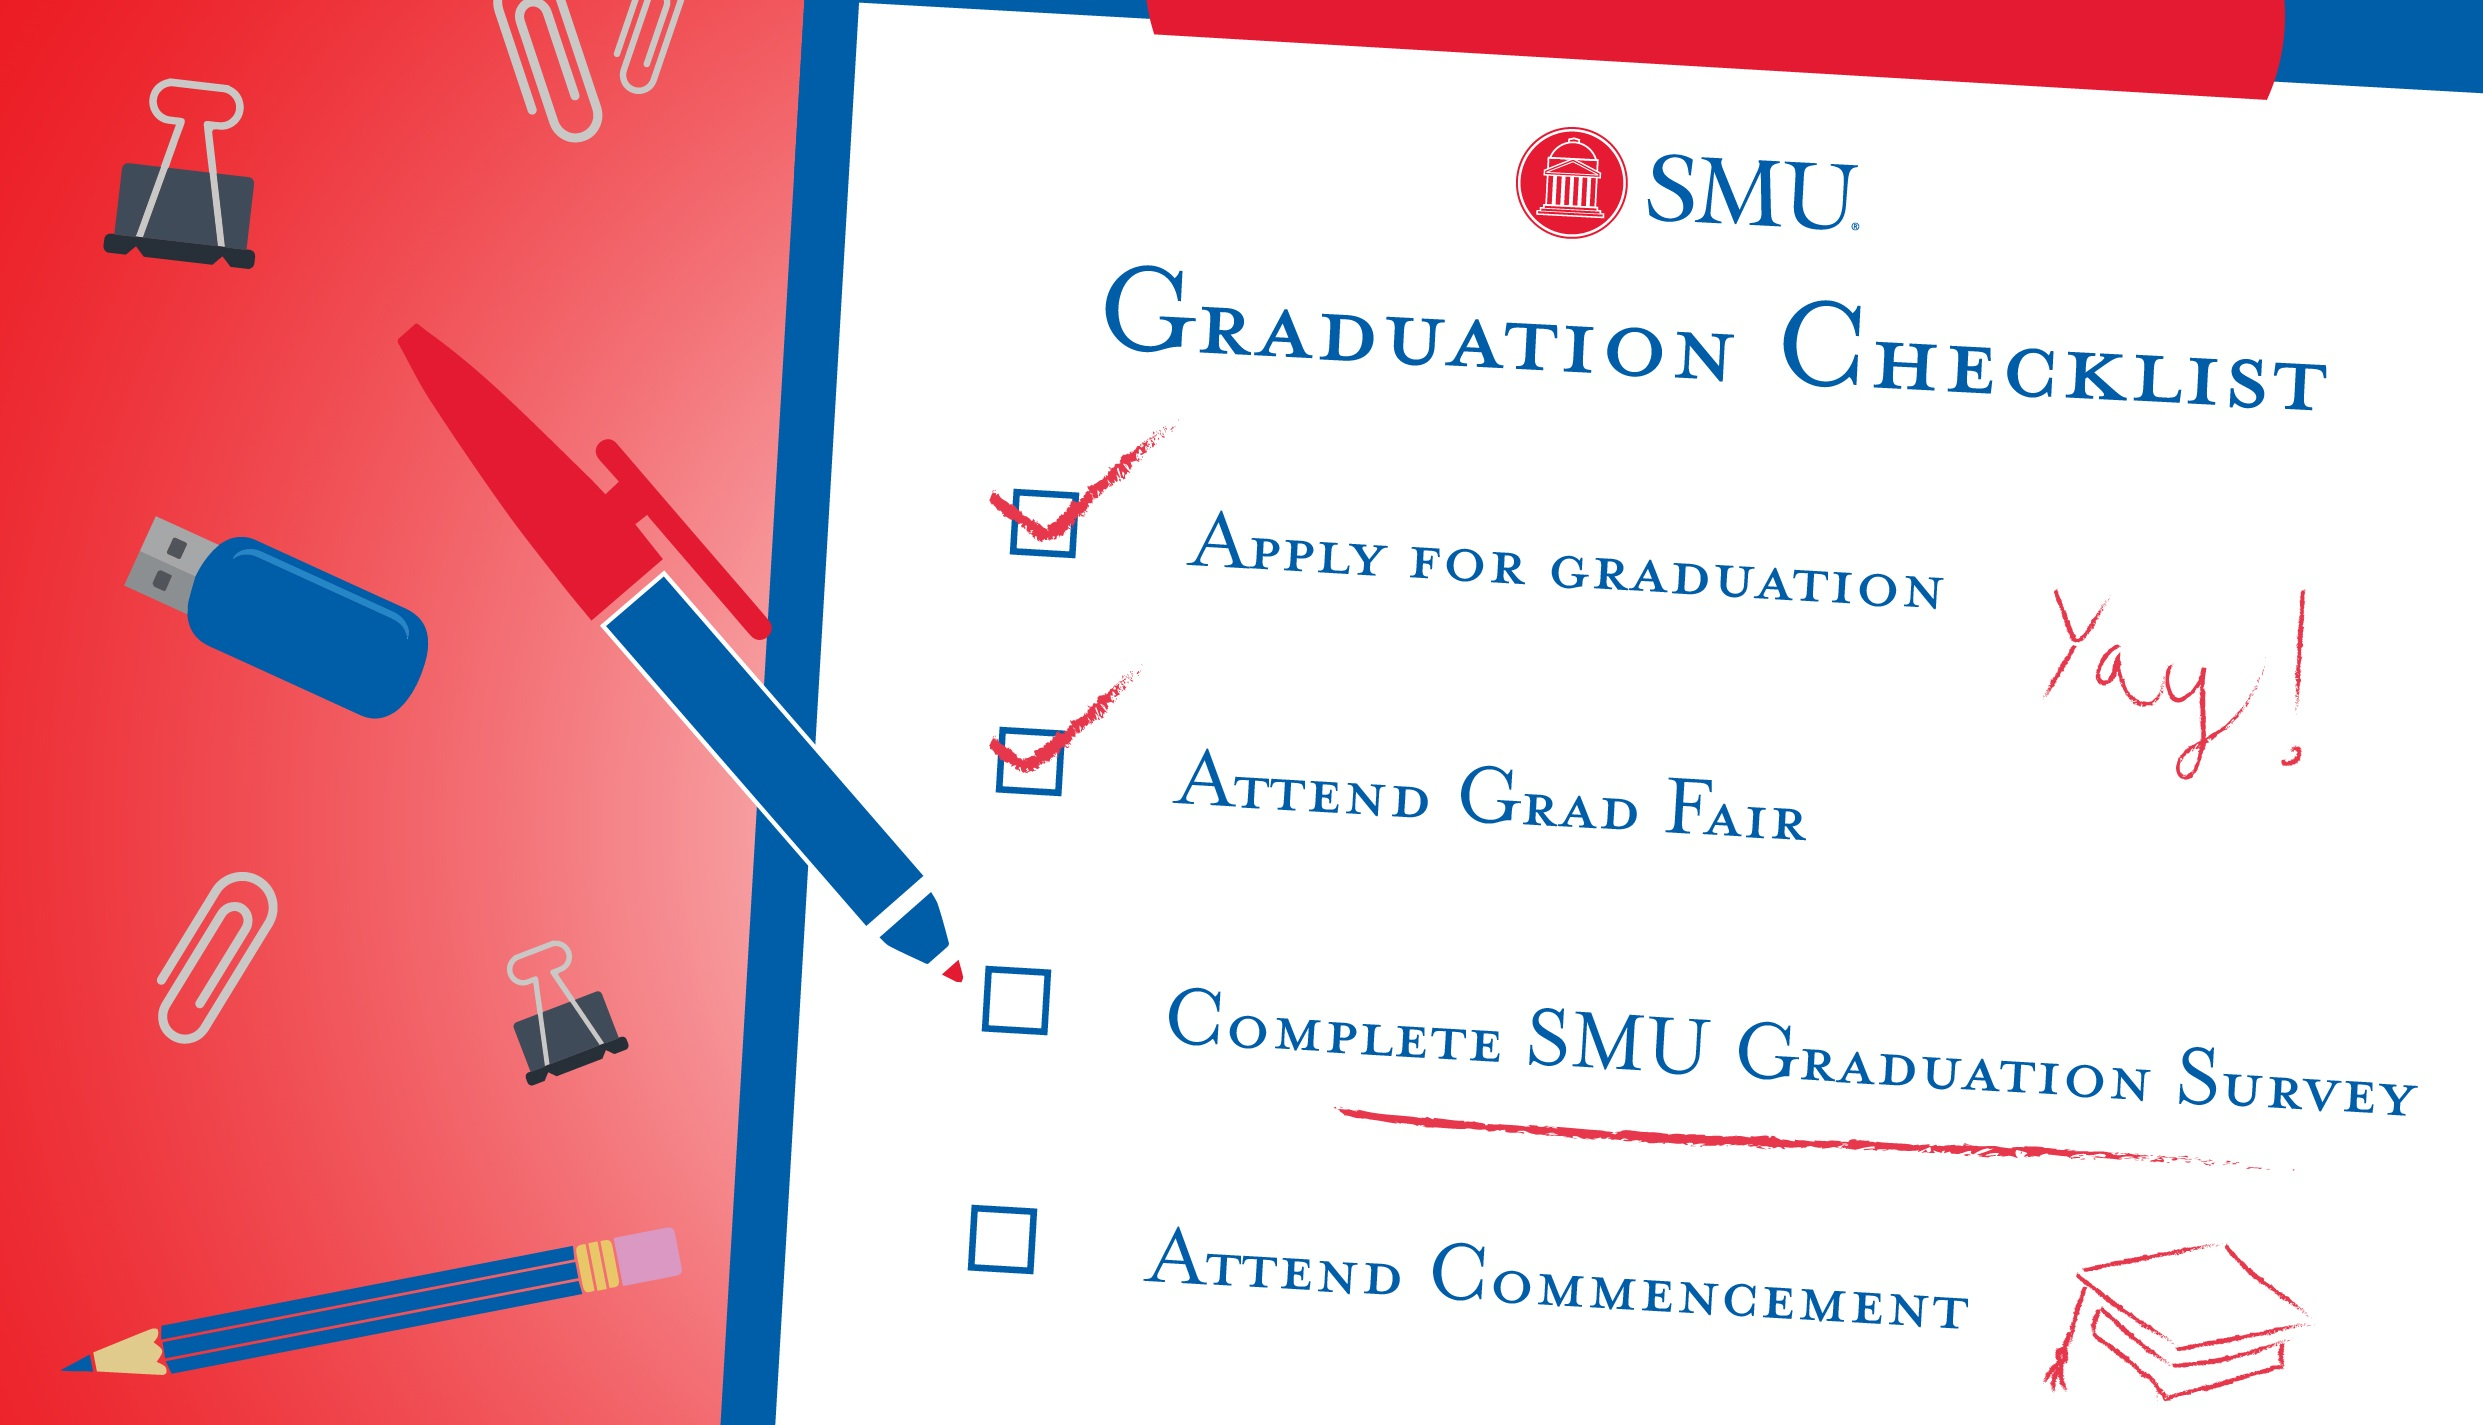 Smu Academic Calendar 2020 May Commencement Convocation   SMU